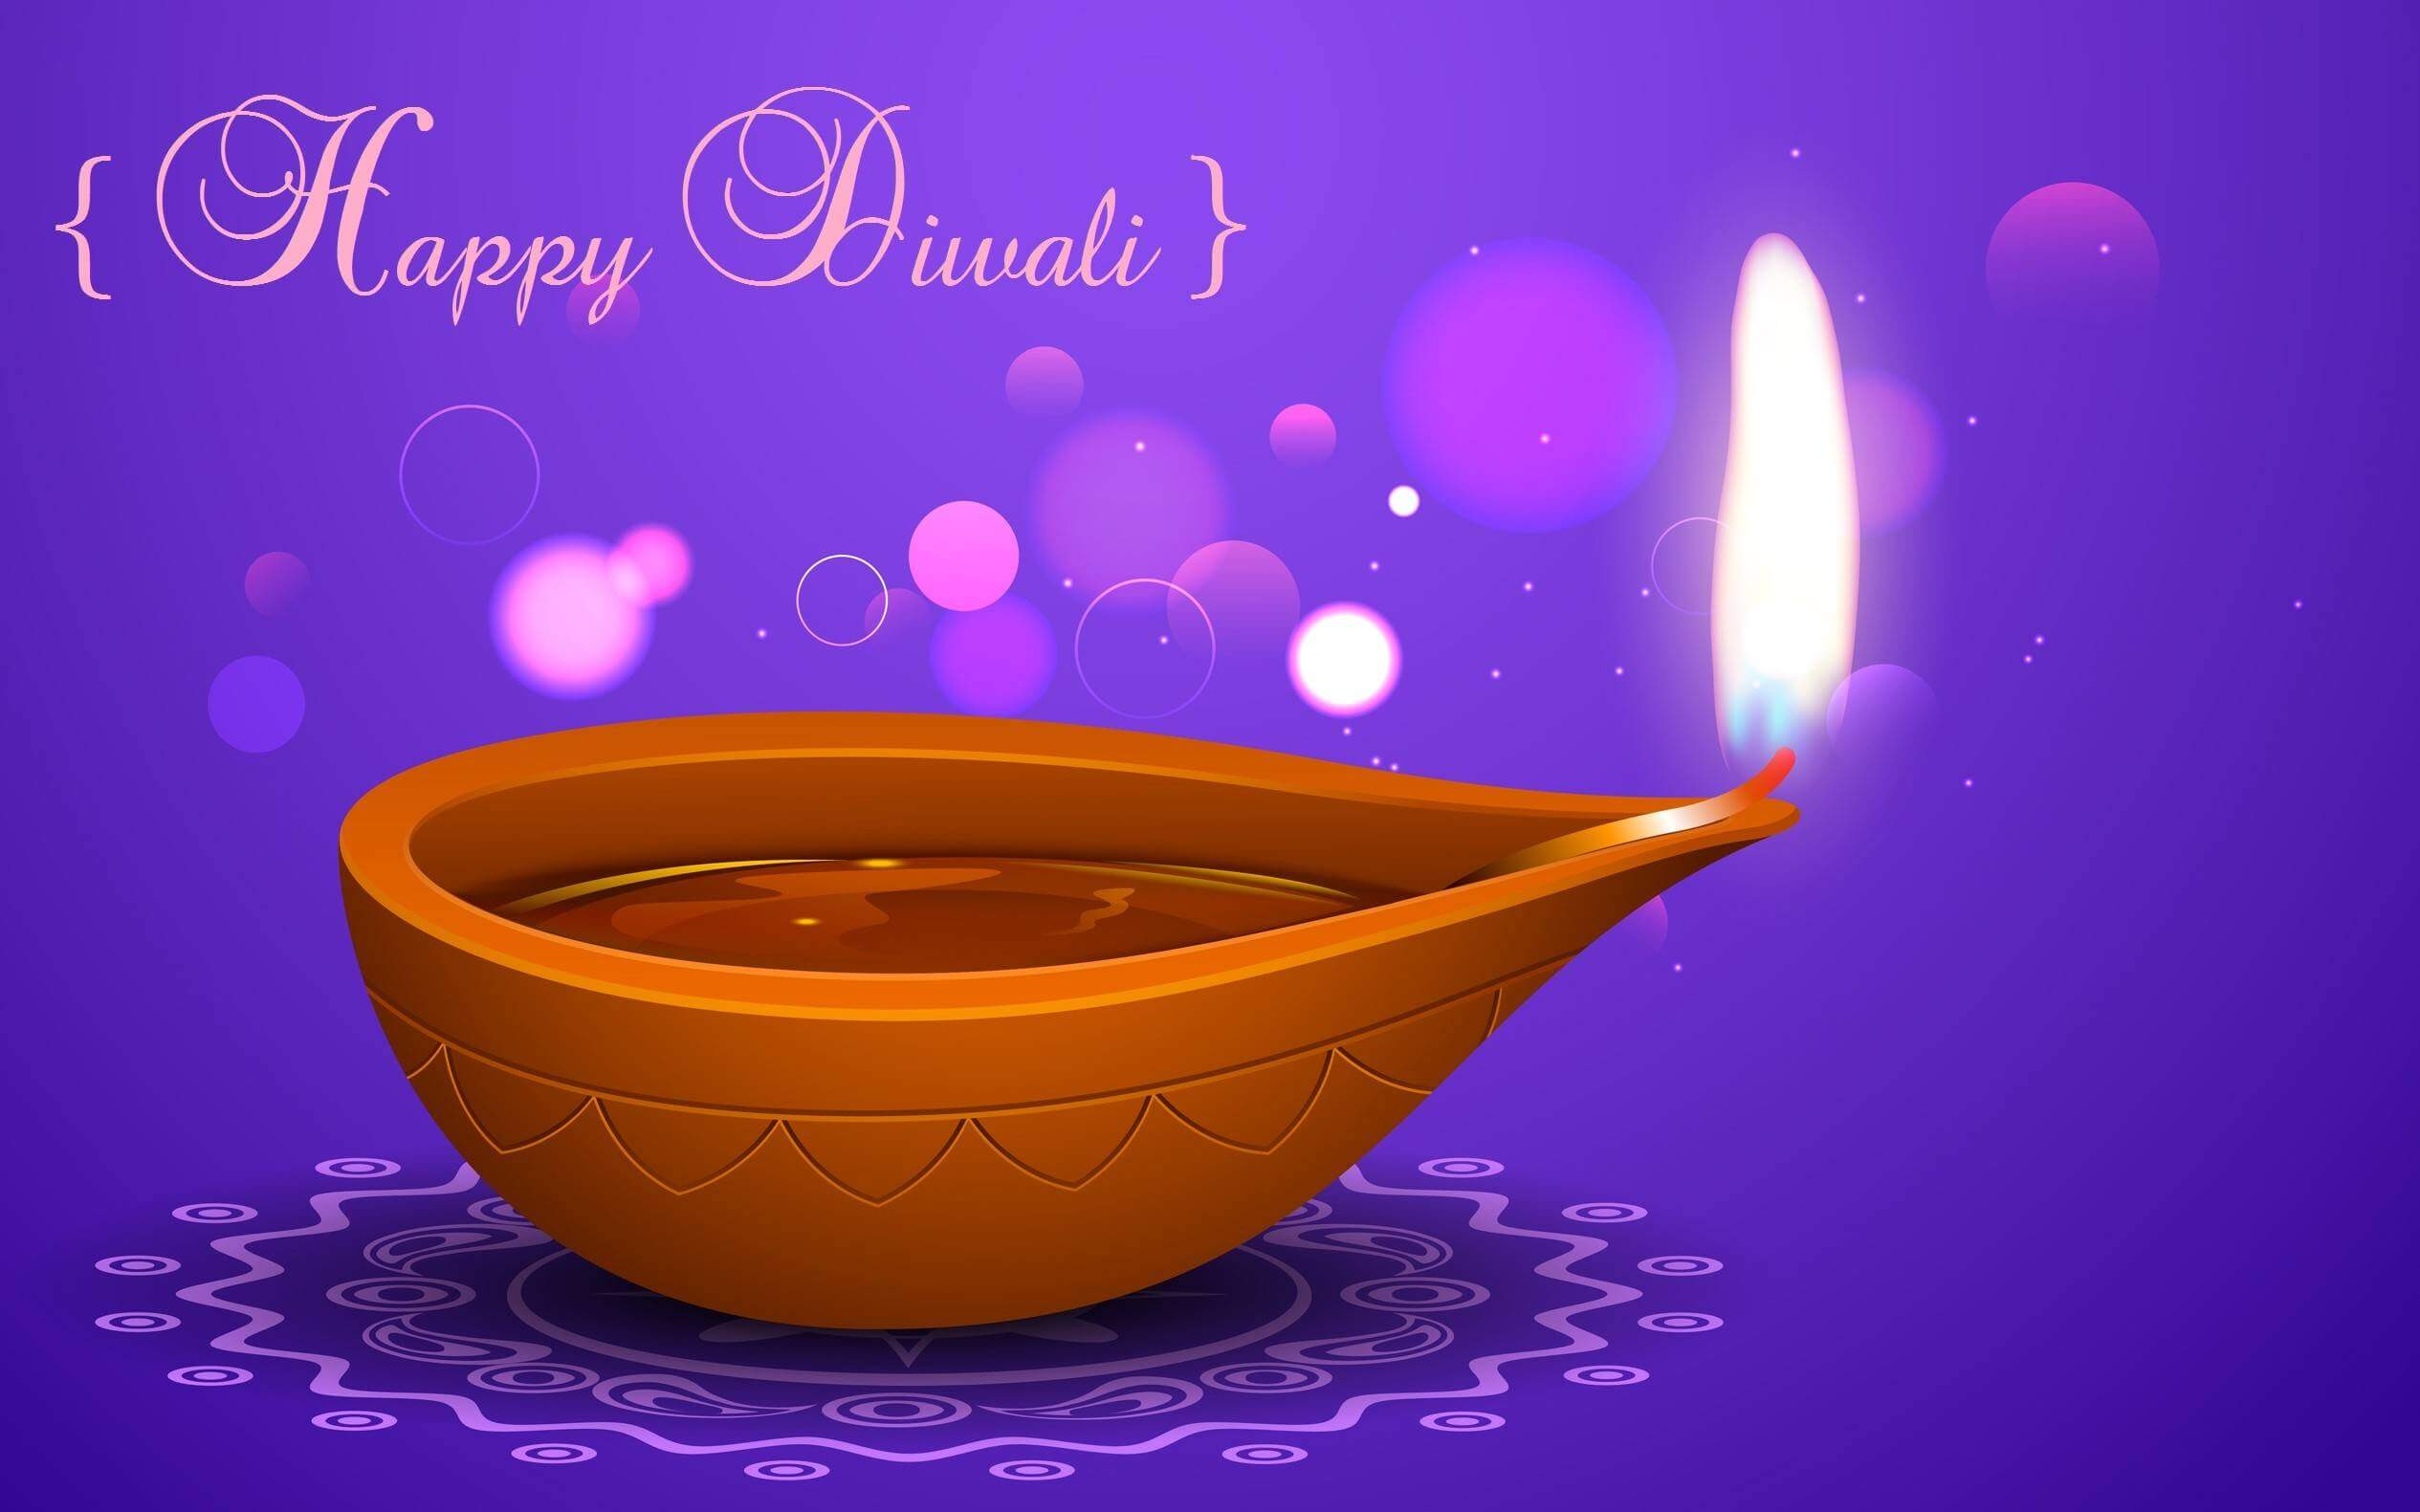 happy diwali wishes lamp graphic hd wallpaper